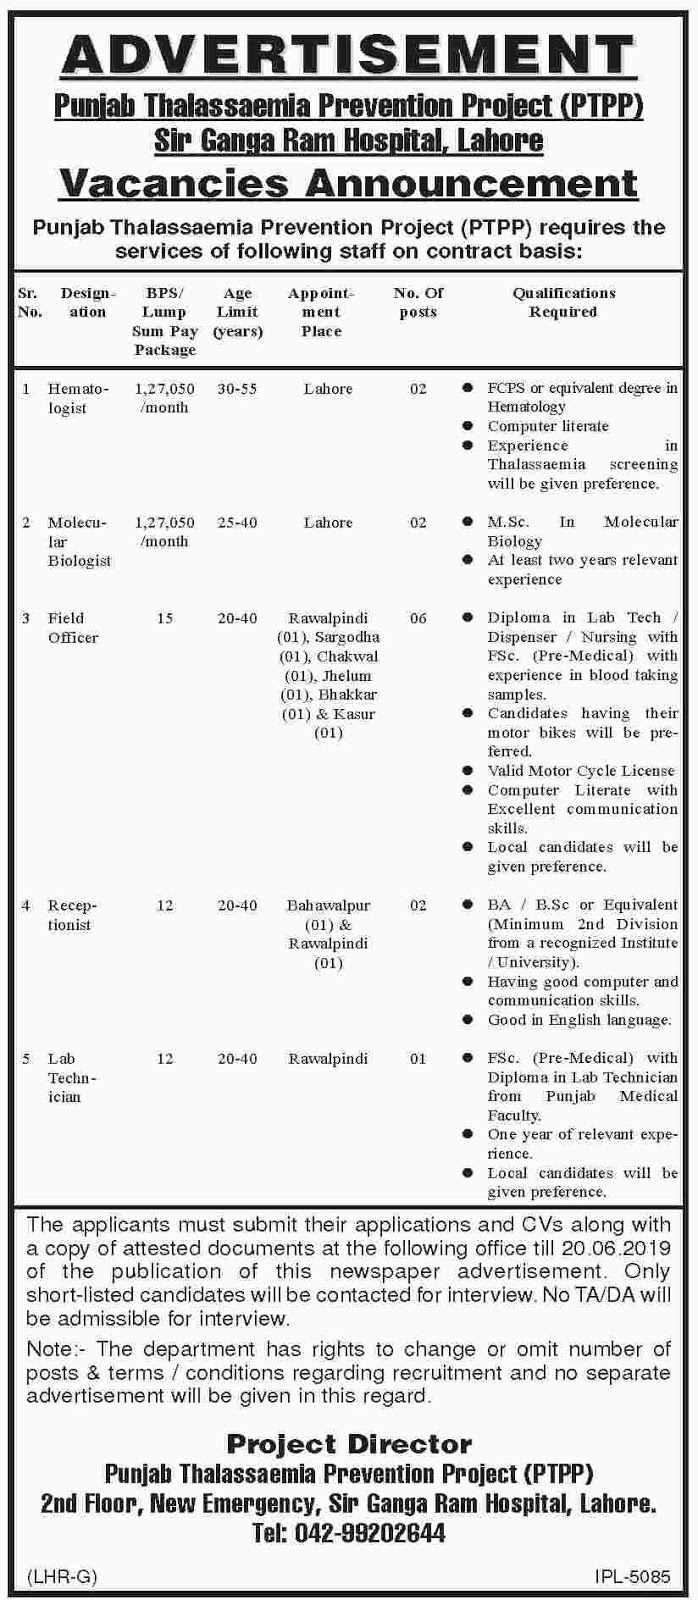 Jobs in Sir Ganga Ram Hospital under Punjab Thalassaemia Prevention Project (PTPP)